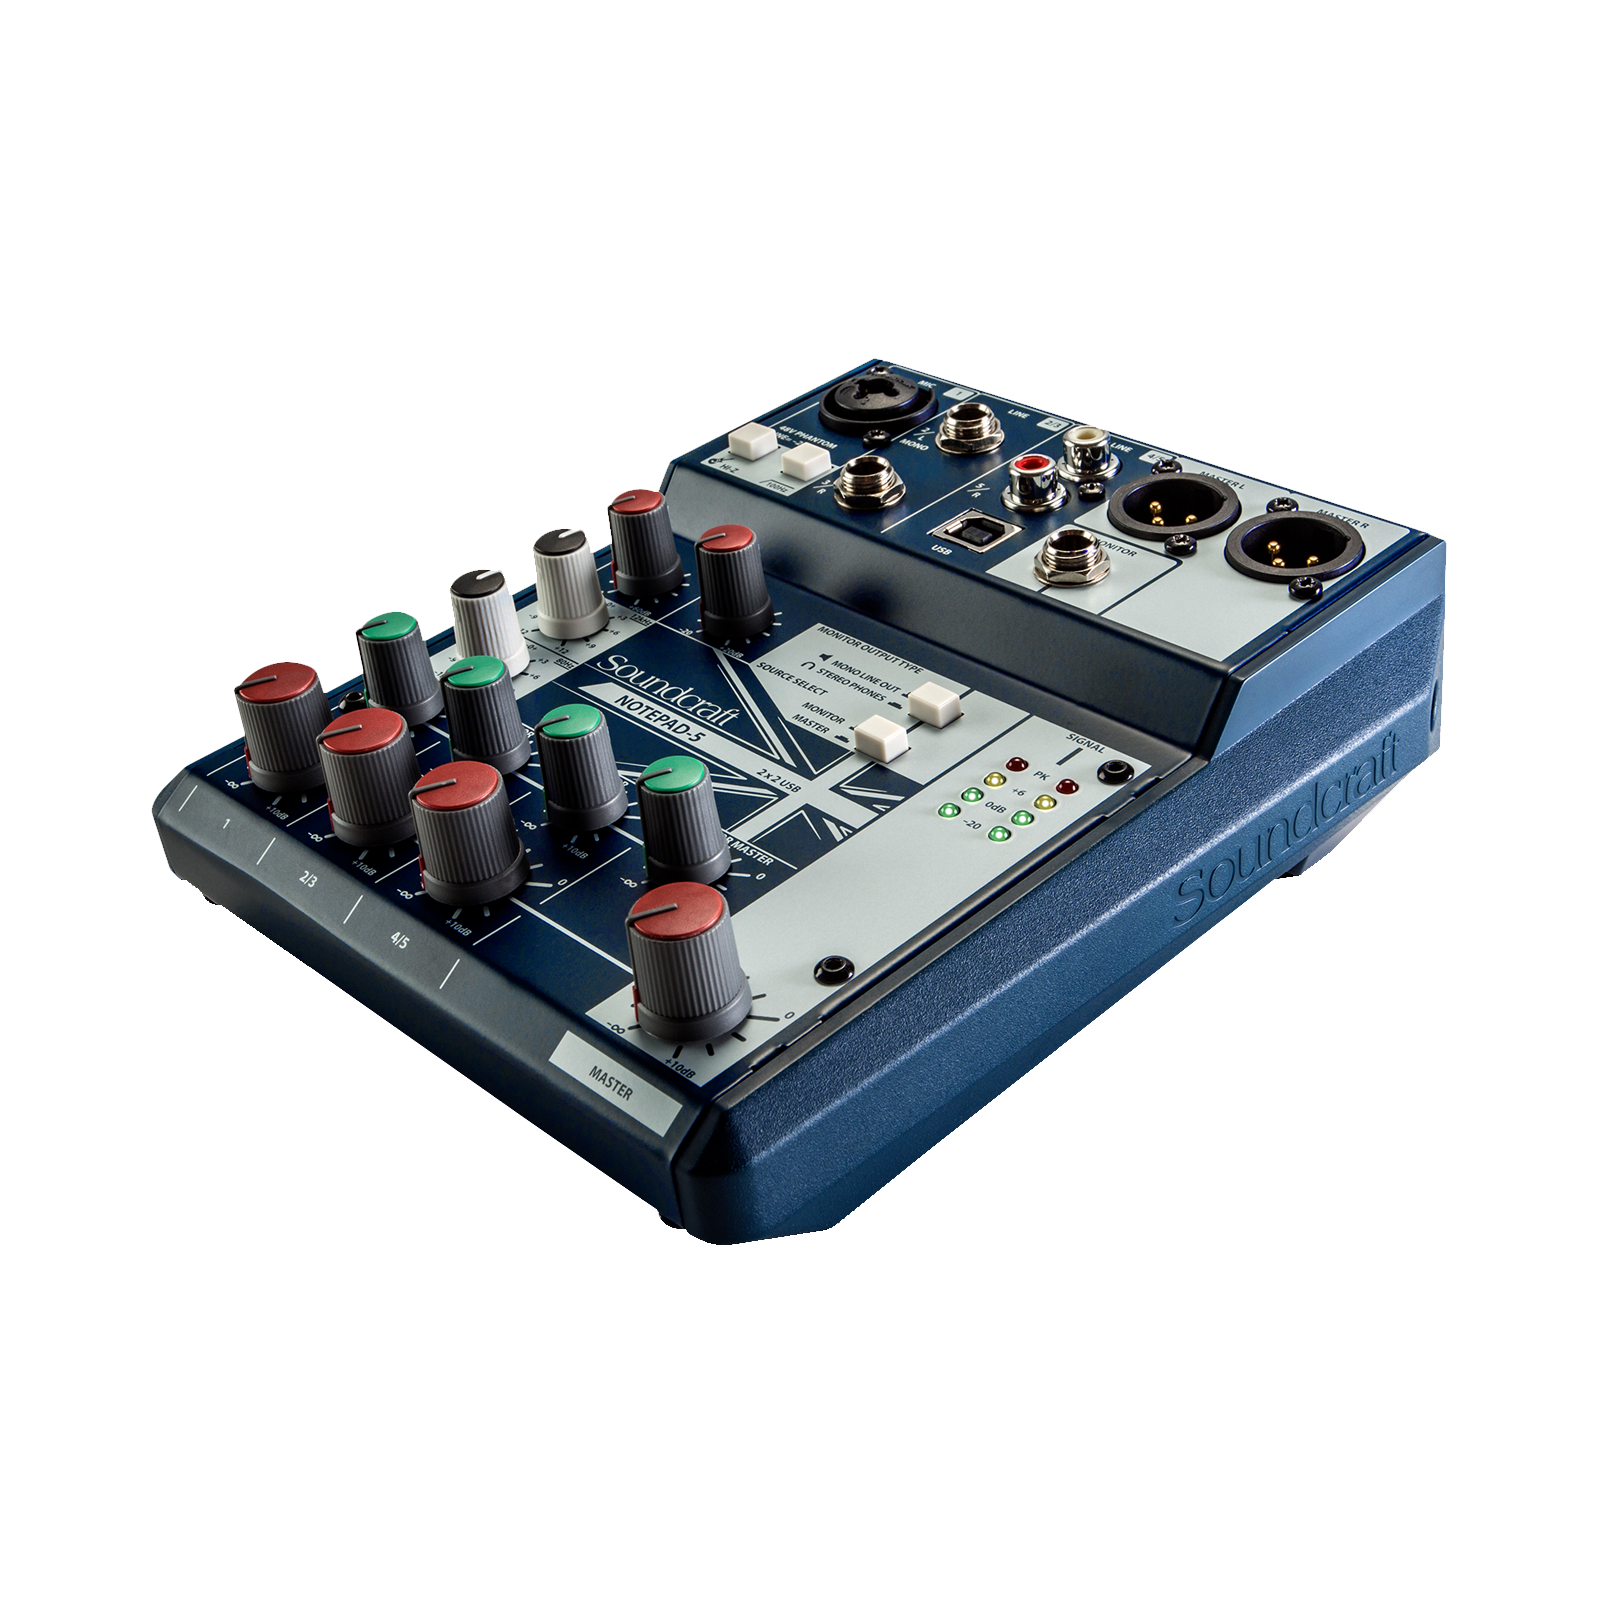 Notepad-5 - Dark Blue - Small-format analog mixing console with USB I/O - Detailshot 1